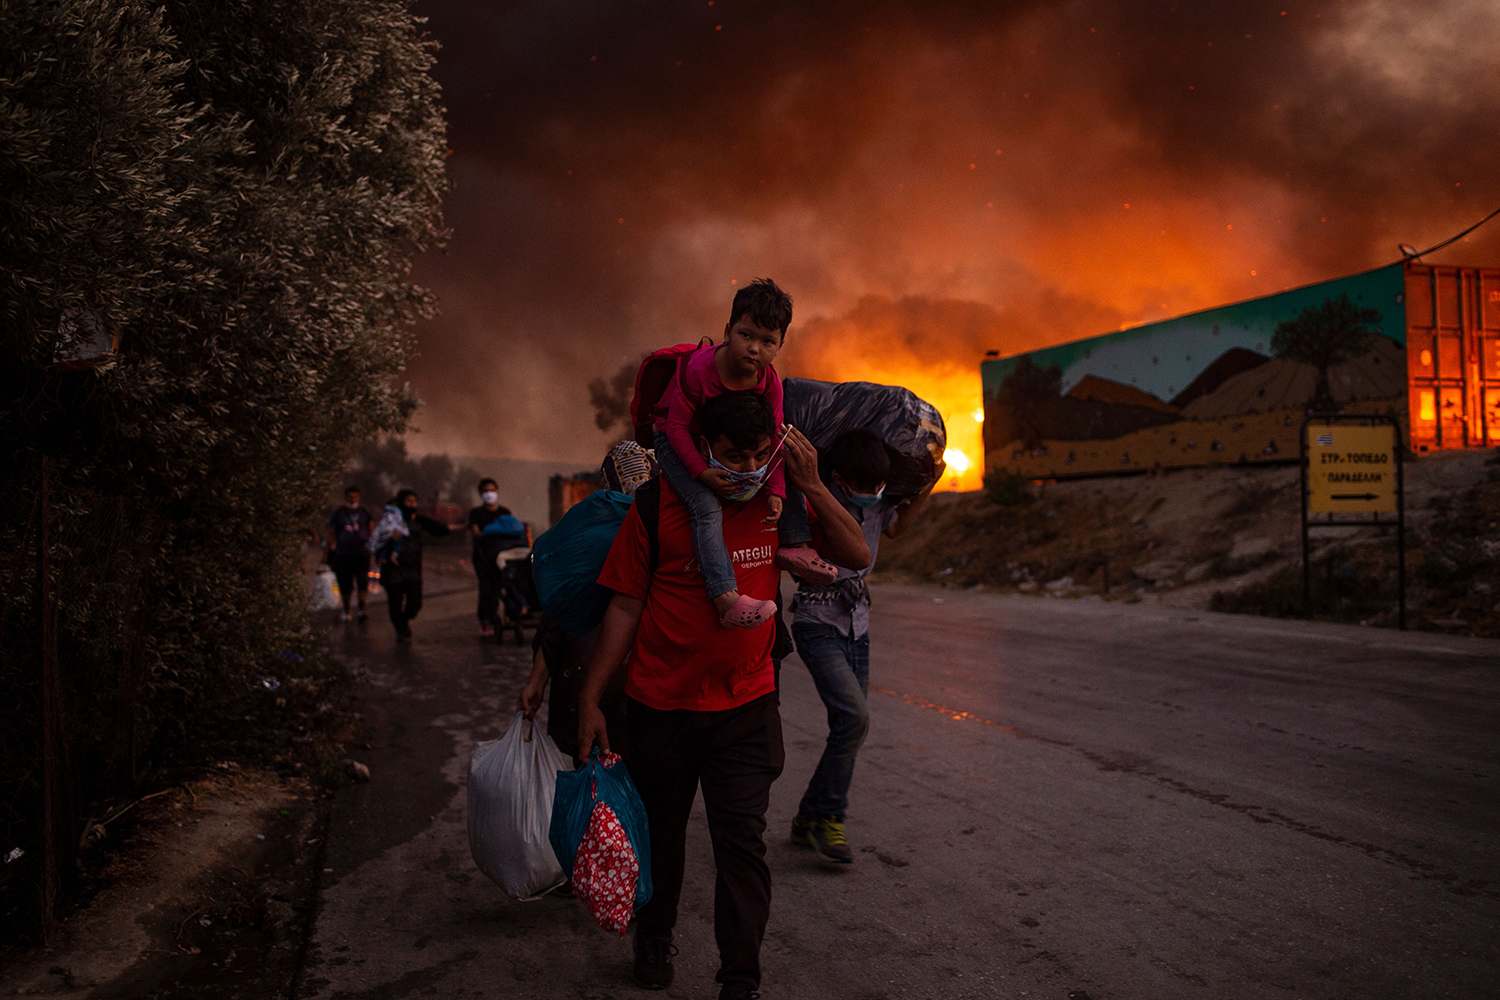 People with children flee flames after a major fire breaks out in the Moria migrant camp on the Greek Aegean island of Lesbos on Sept. 9. A fast-moving fire destroyed much of the camp, leaving most of its 12,000 residents homeless. ANGELOS TZORTZINIS/AFP via Getty Images